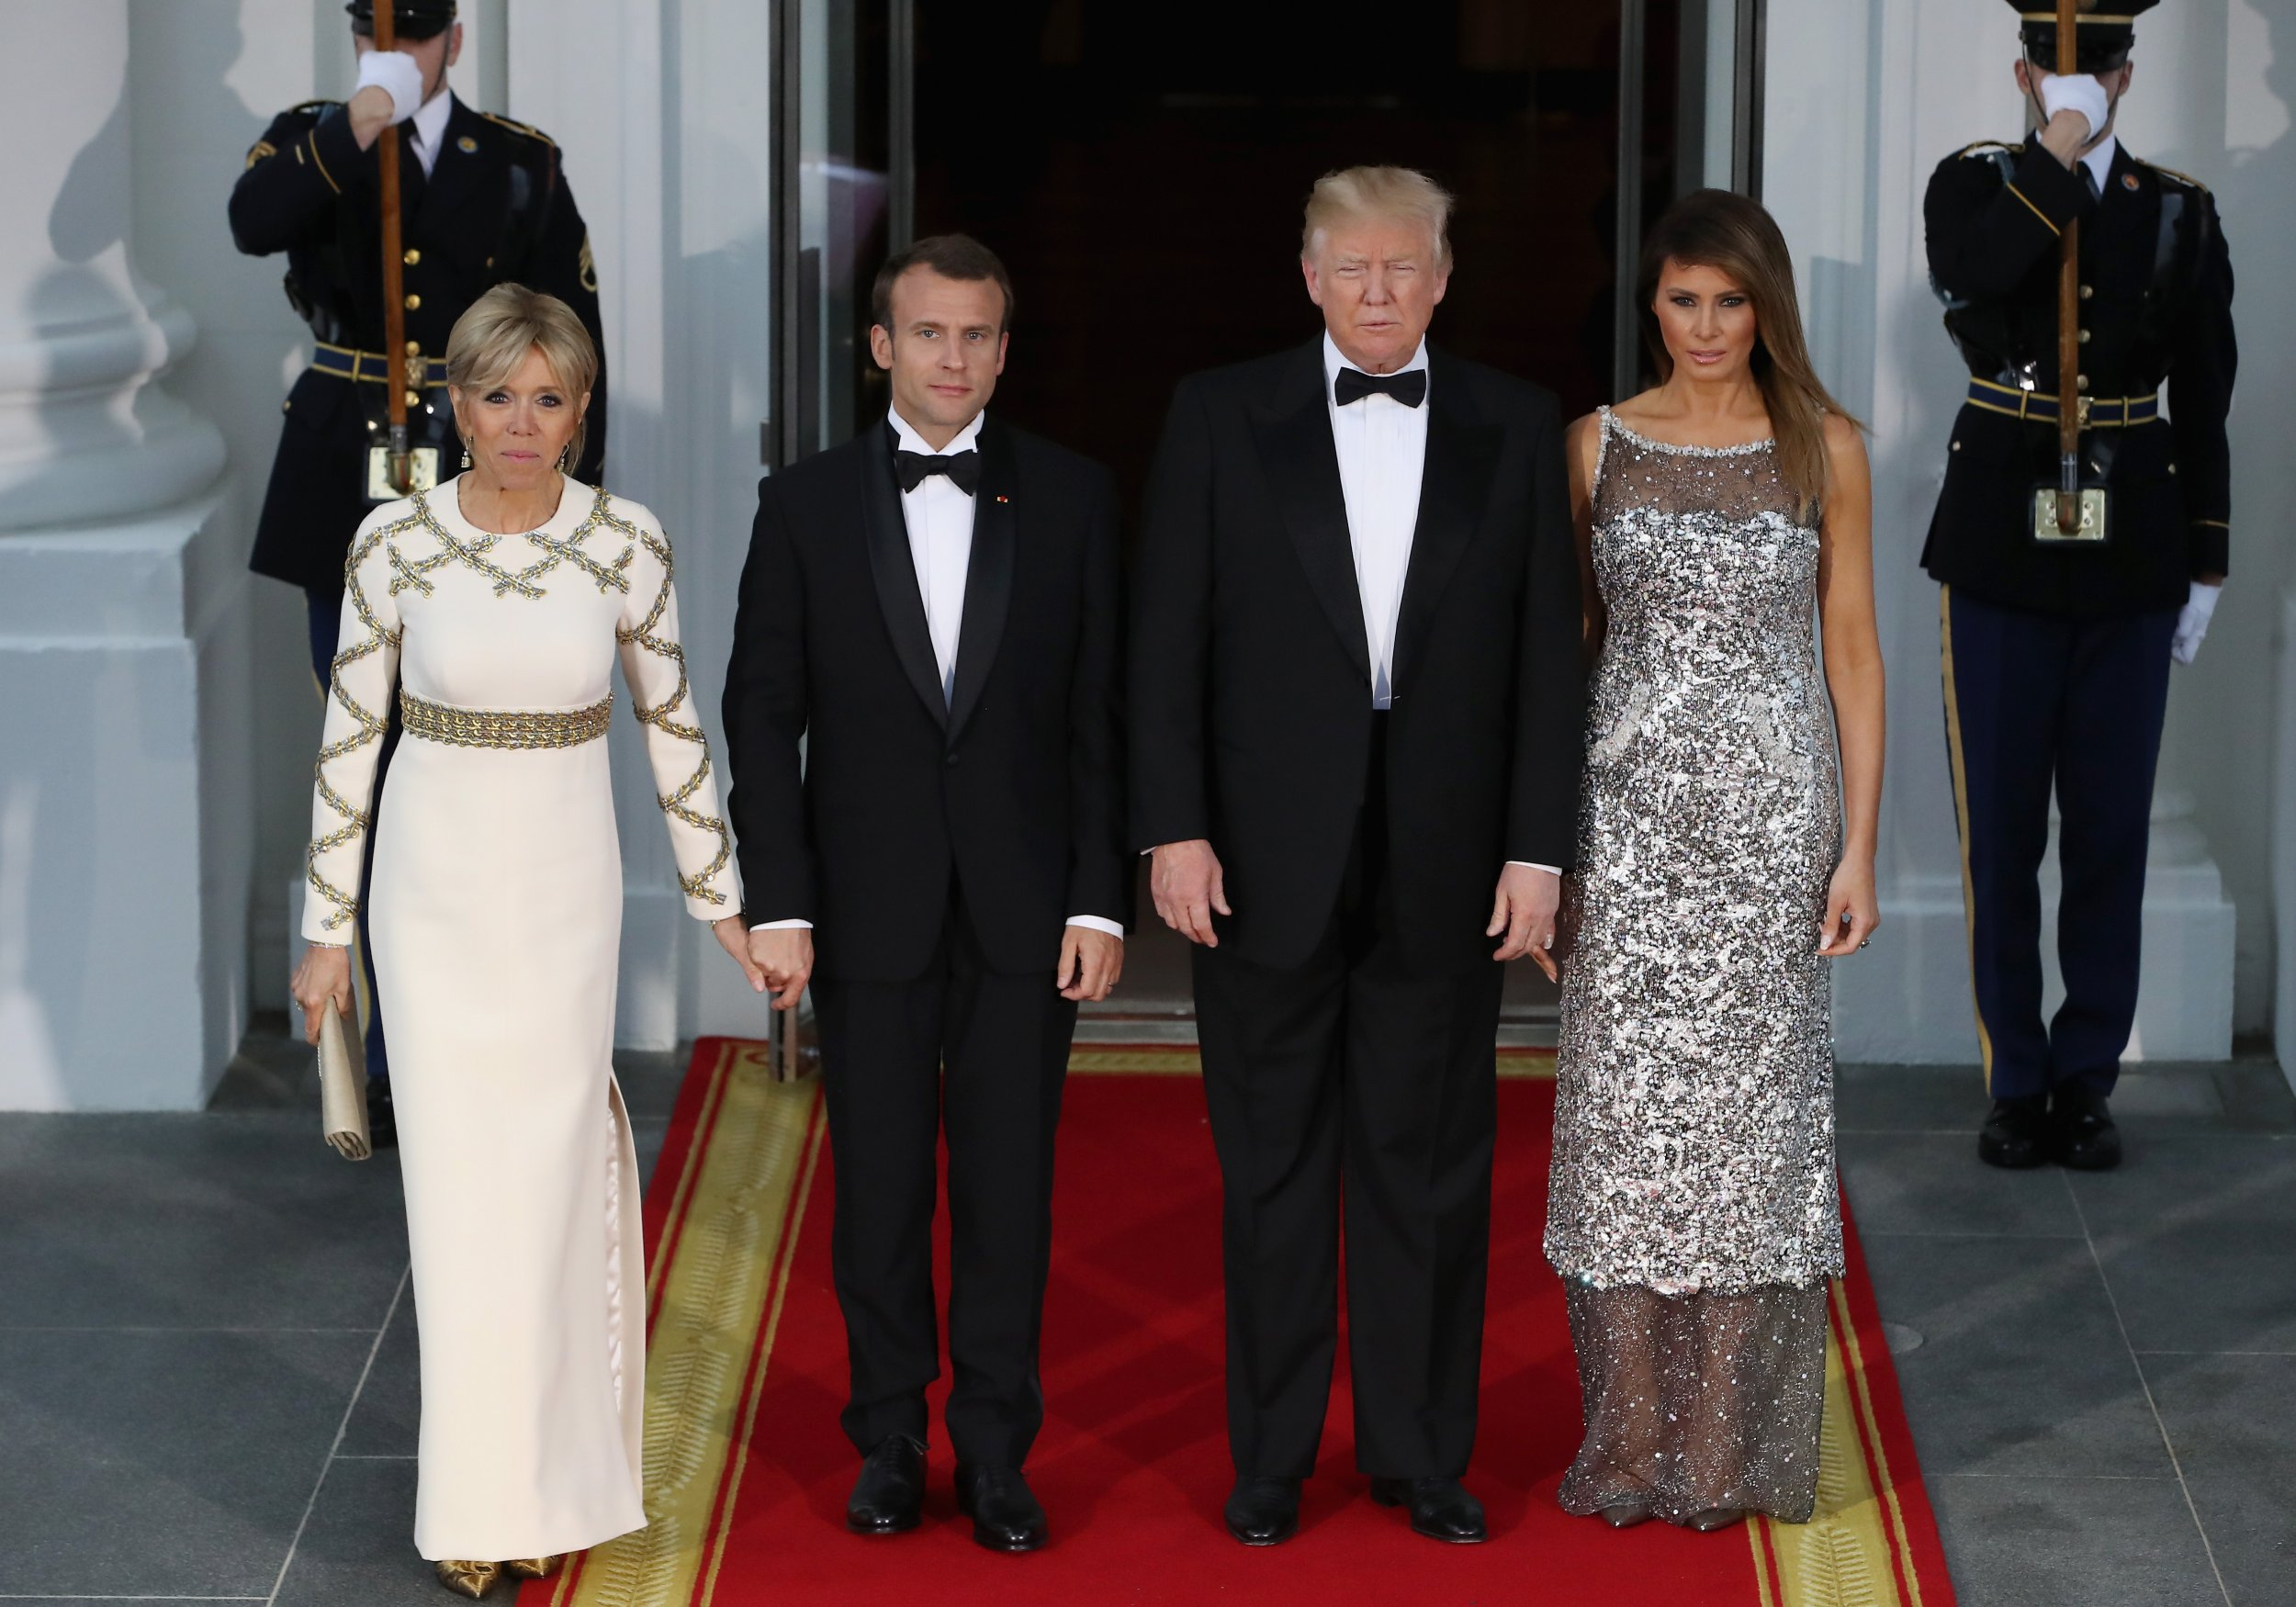 Trump S First State Dinner Likely Richest In History As